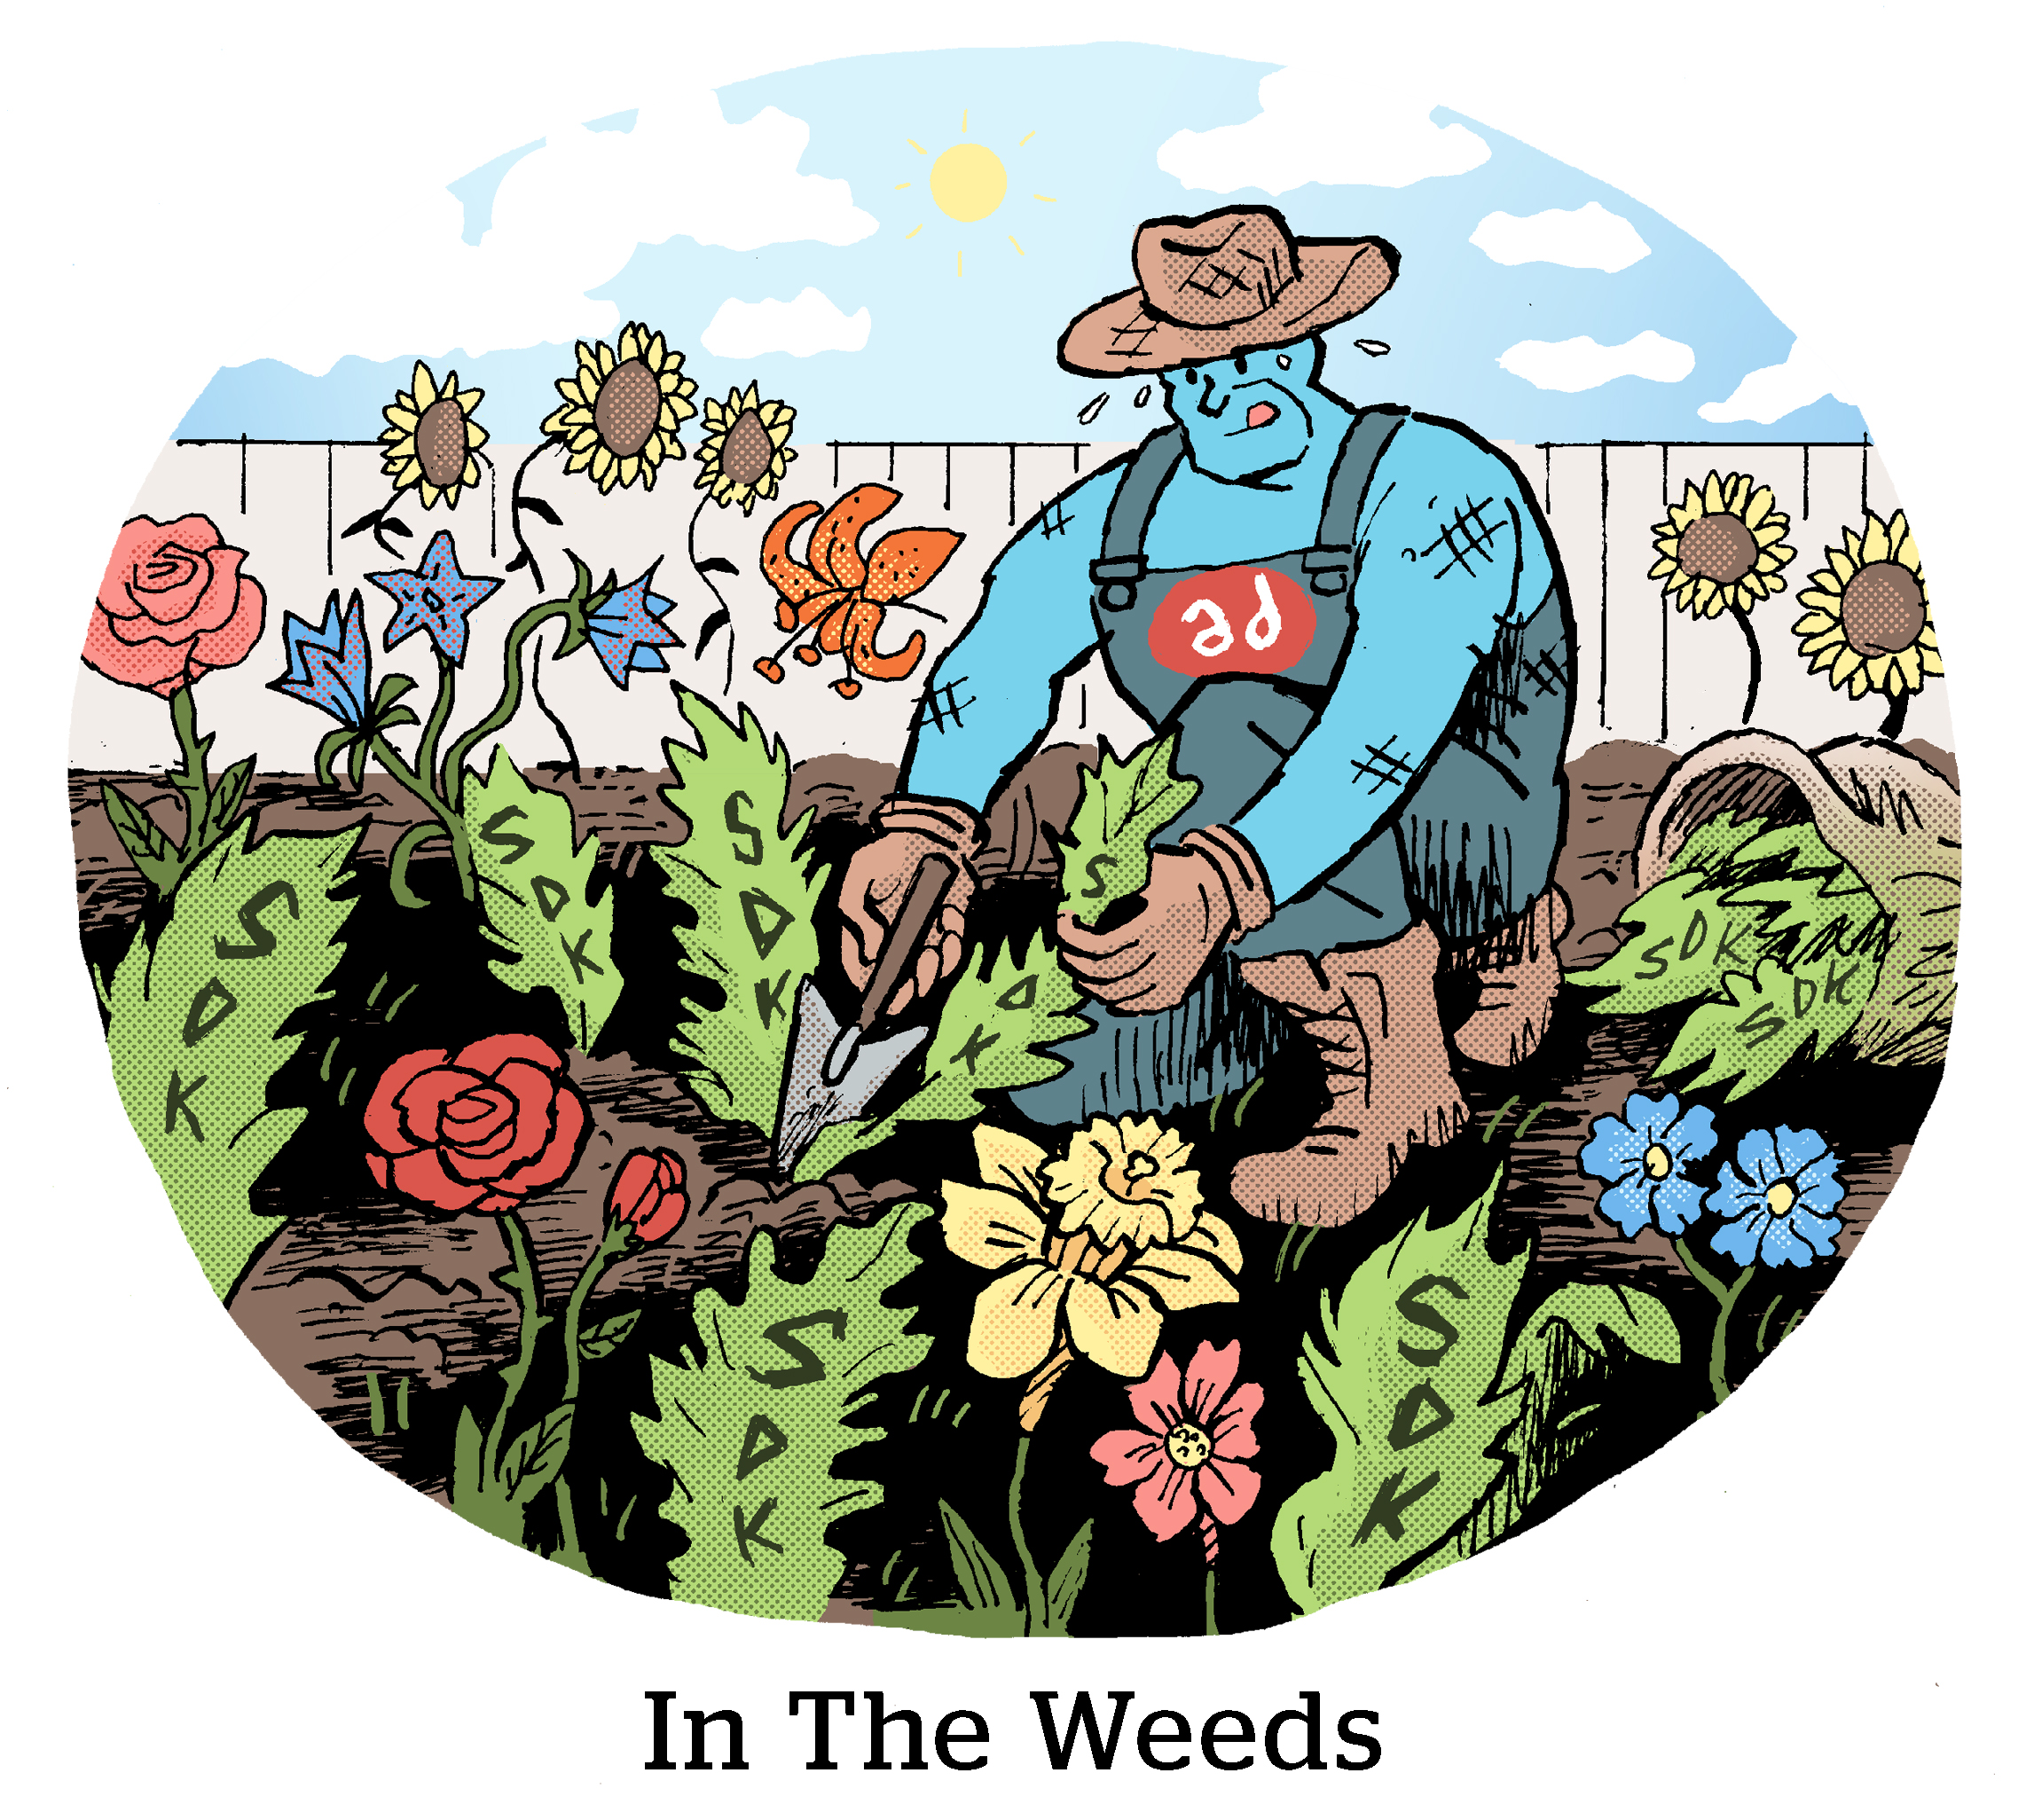 Comic: In The Weeds